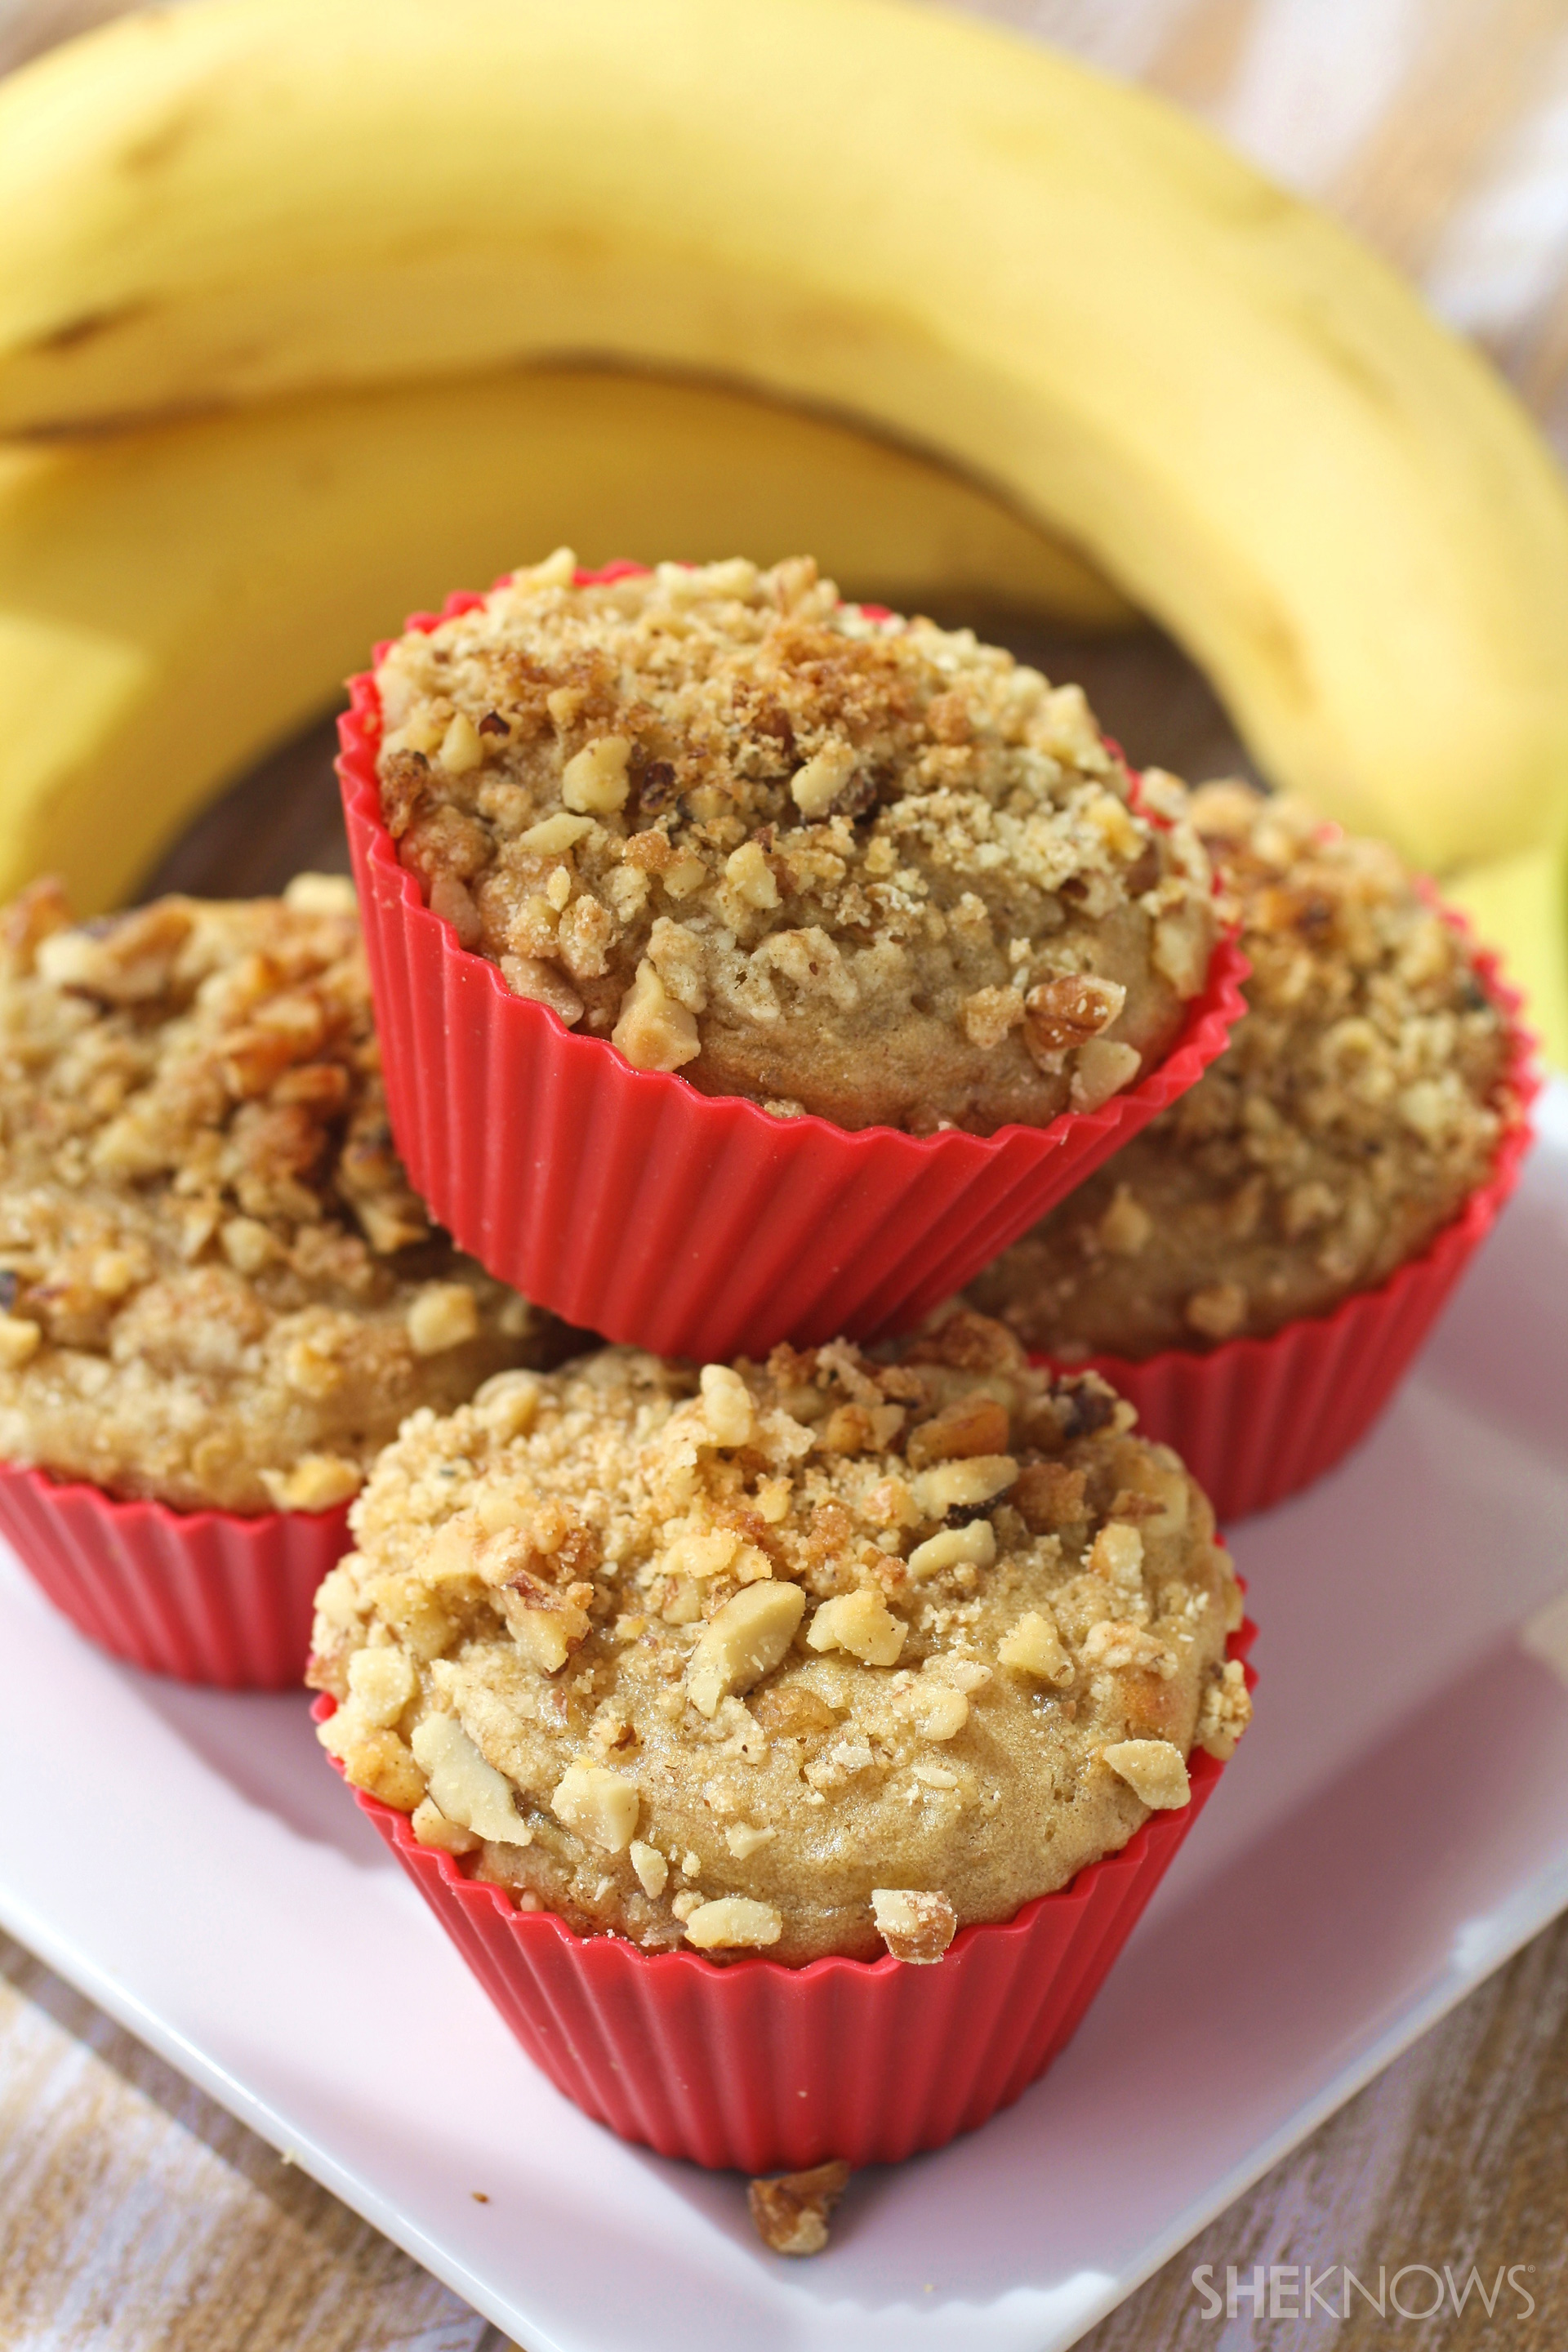 Gluten-free buttermilk, banana, and quinoa muffins with crumble topping